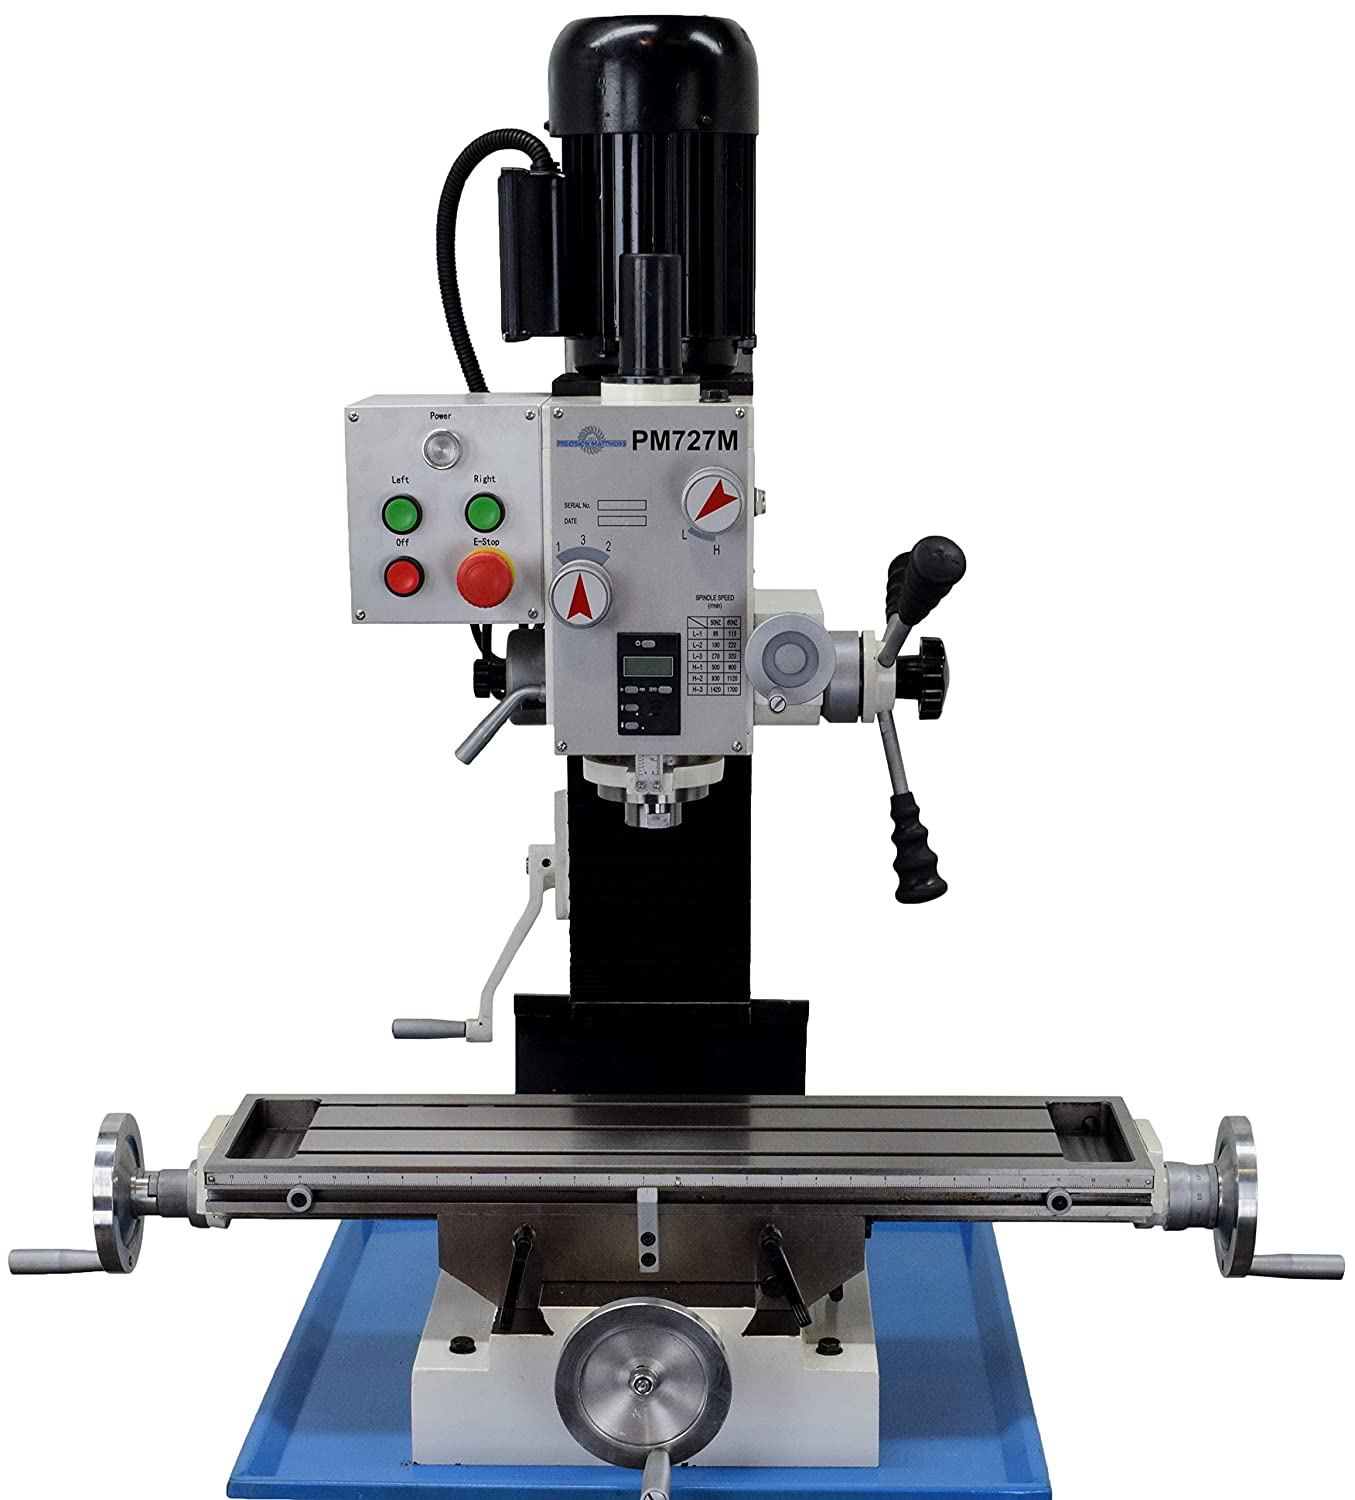 Precision Matthews Pm-727m Milling Machine